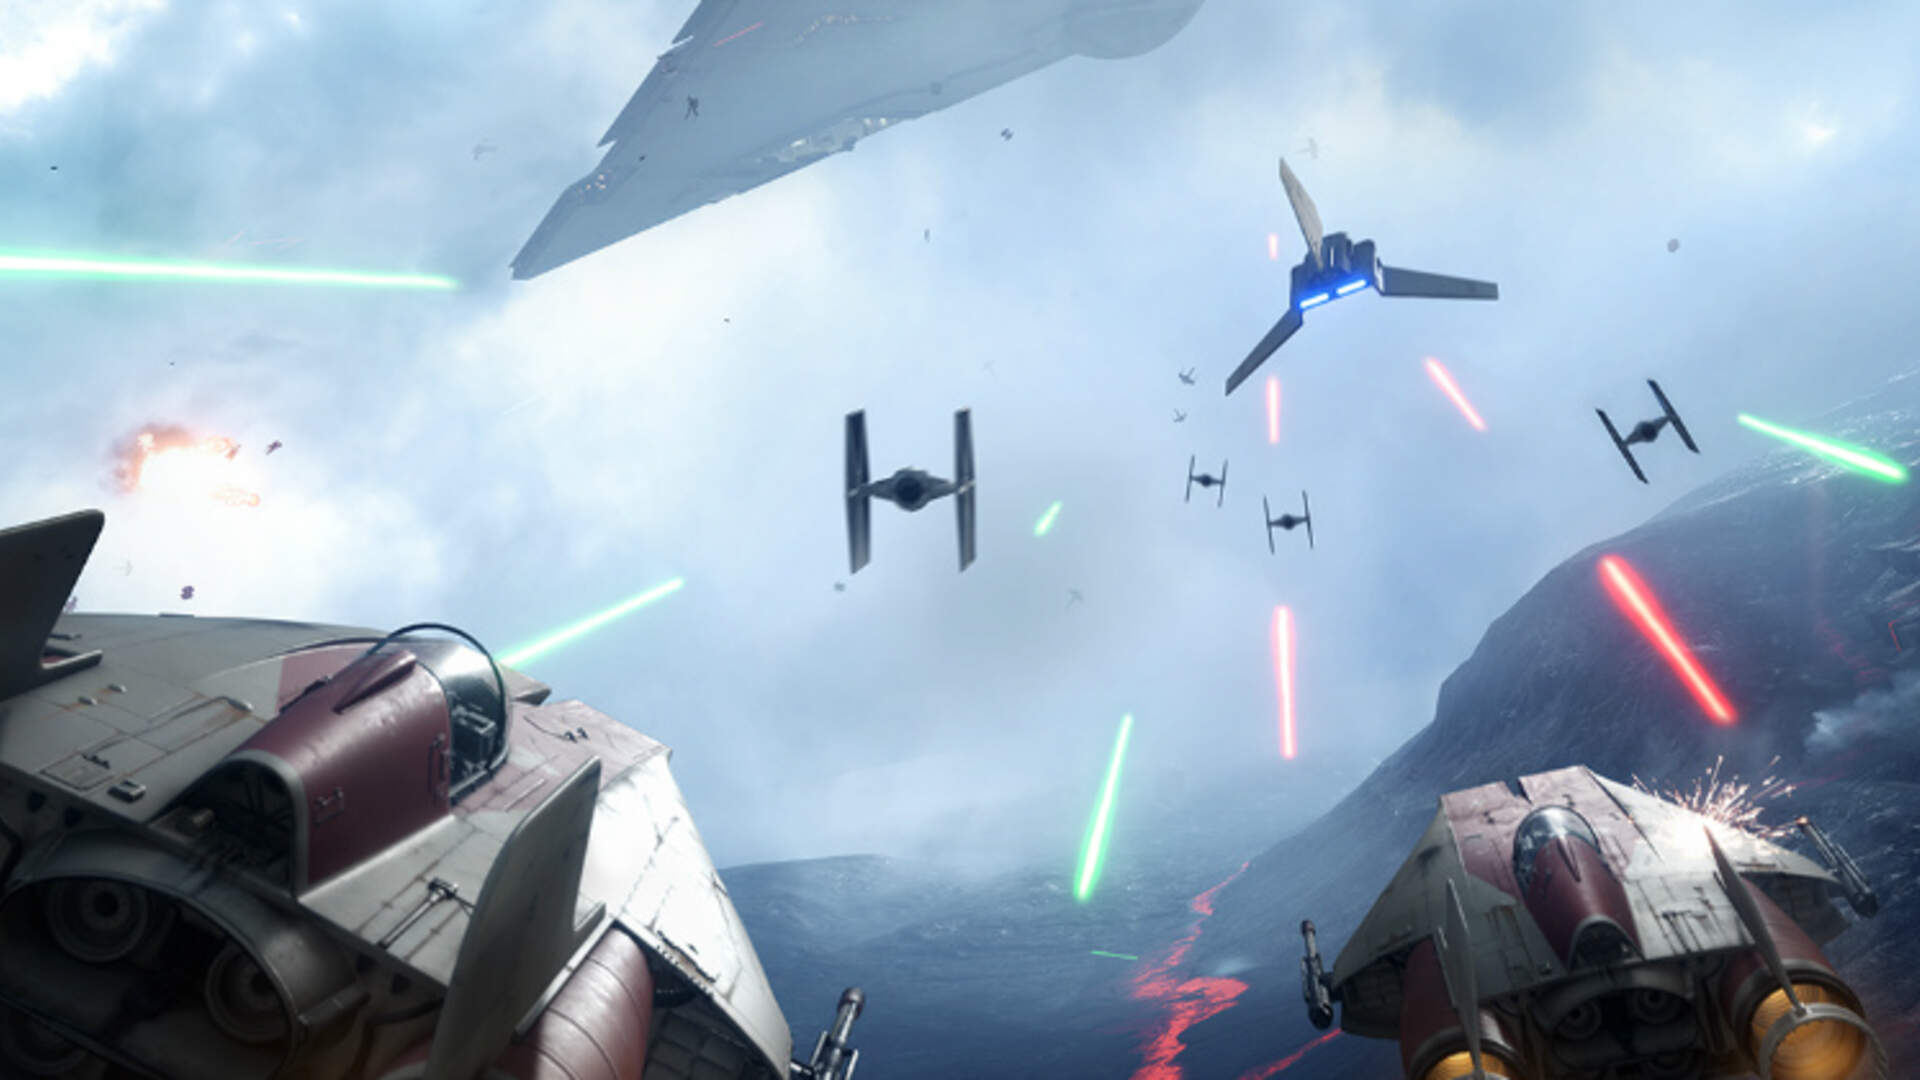 What Multiplayer Modes are Available in Star Wars Battlefront?